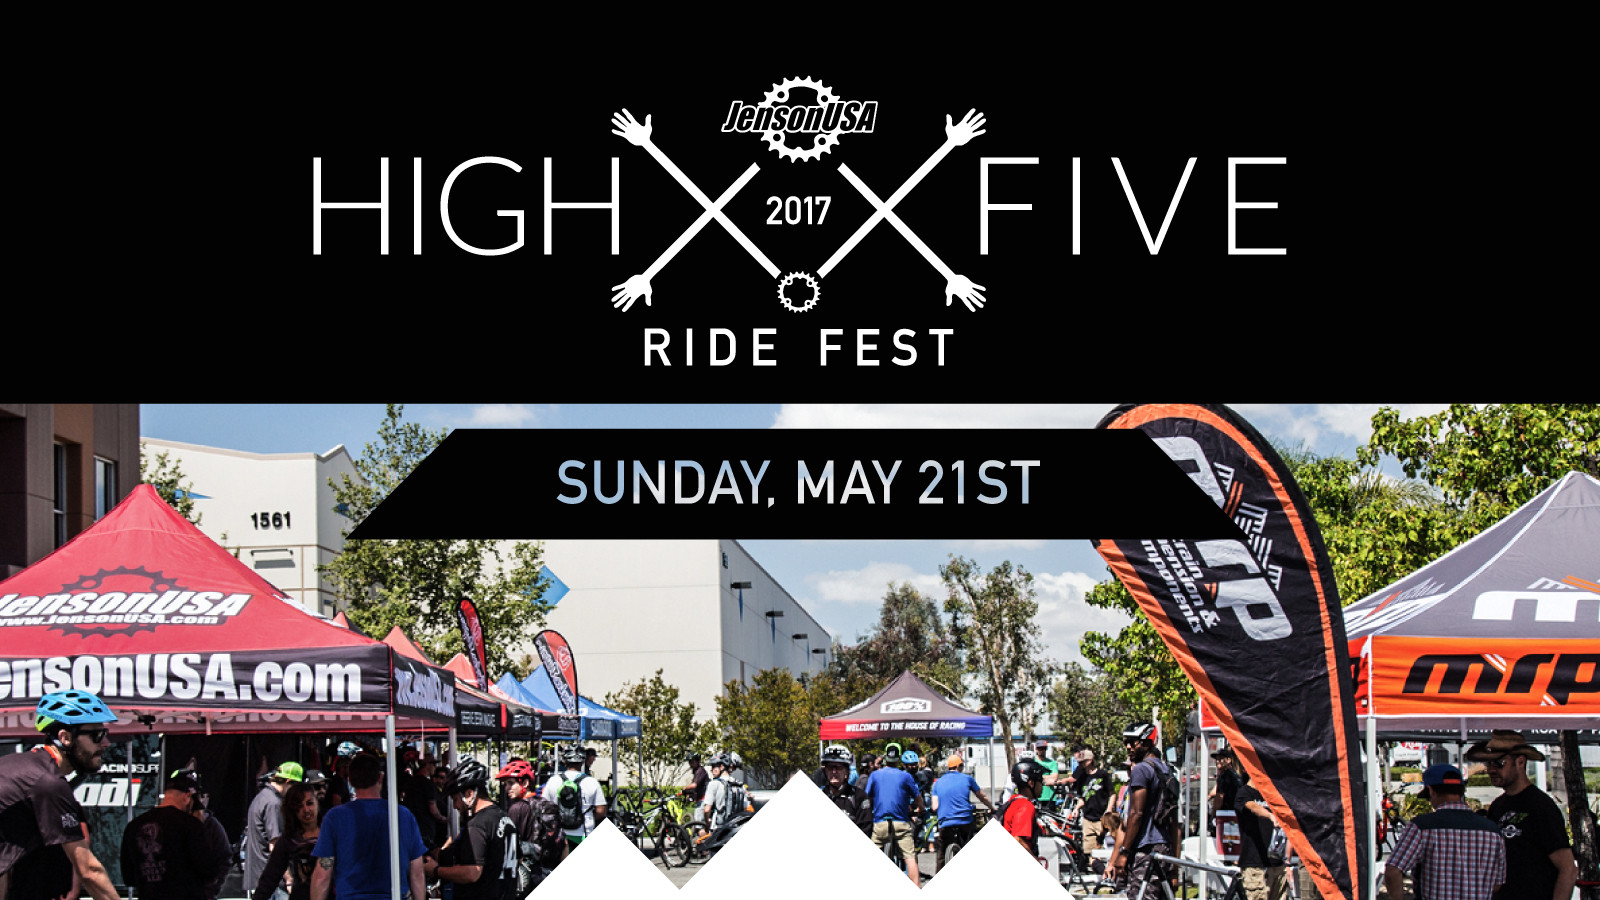 """JENSON USA's 2nd ANNUAL """"HIGH-FIVE RIDE FEST"""""""